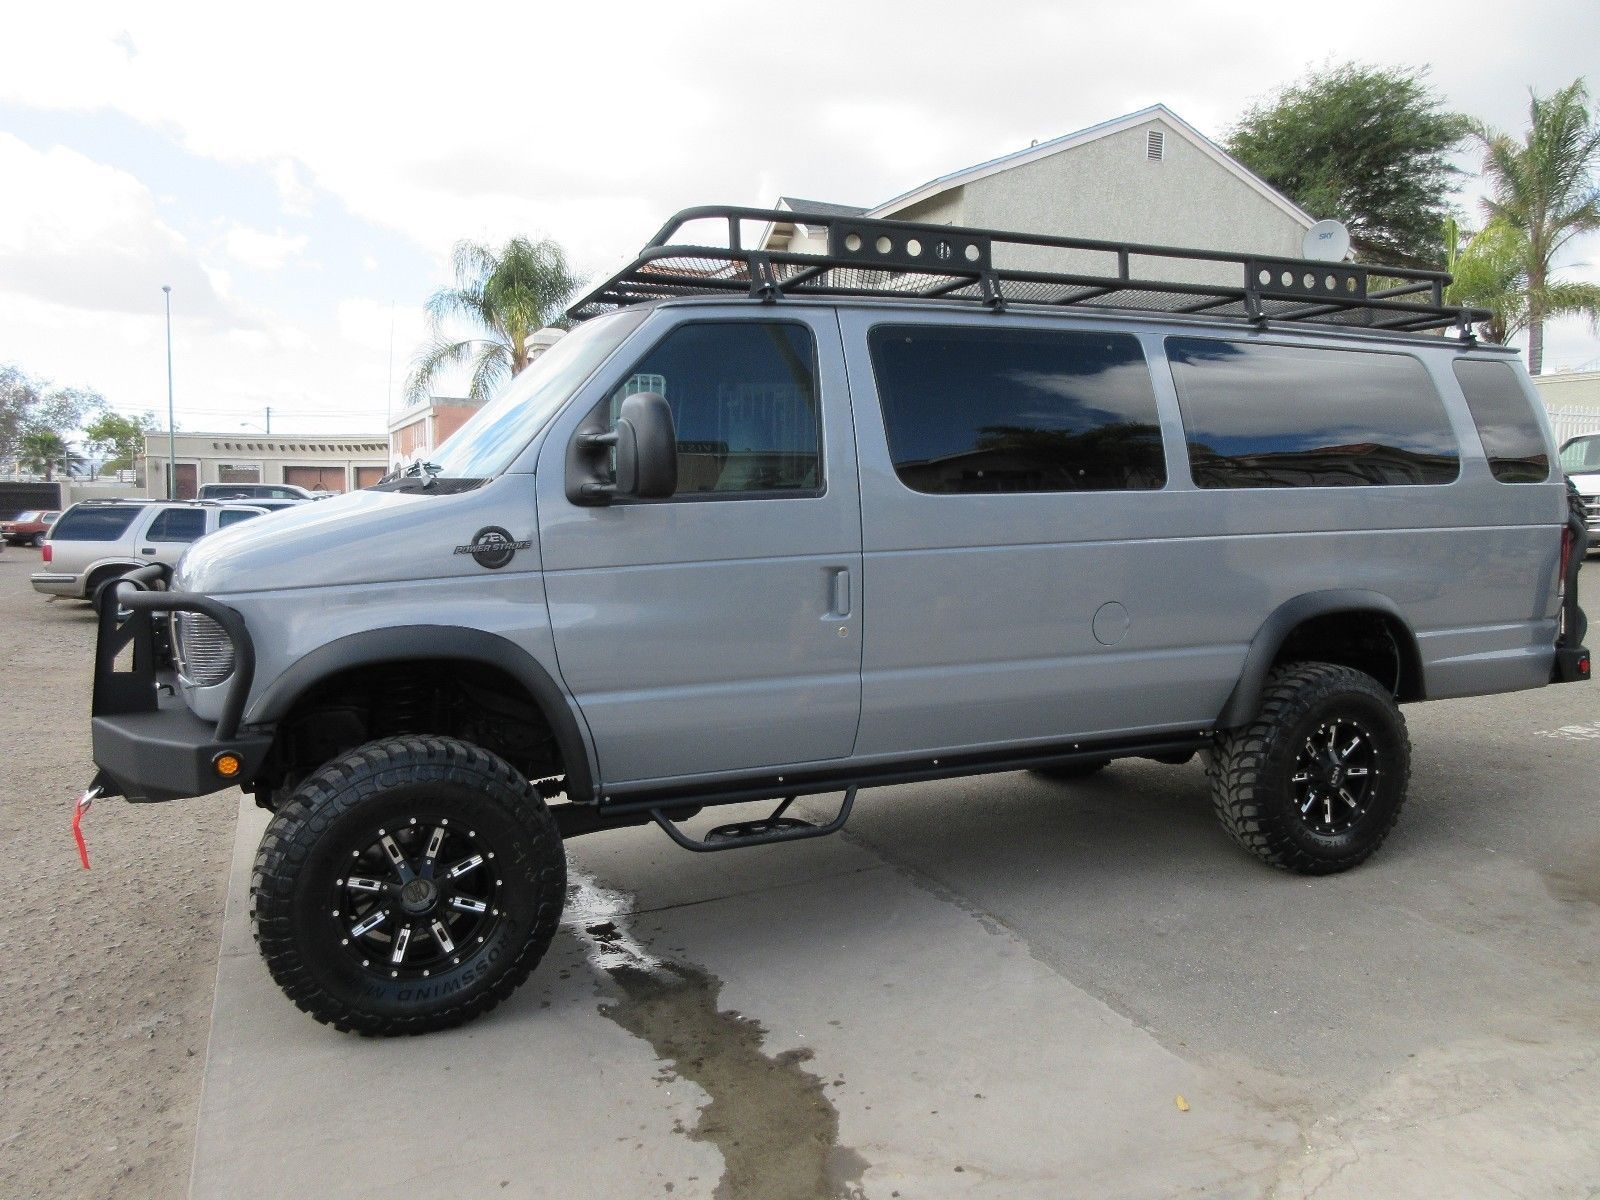 Ford E350 4wd Installed By Advanced Four Wheel Drive Systems